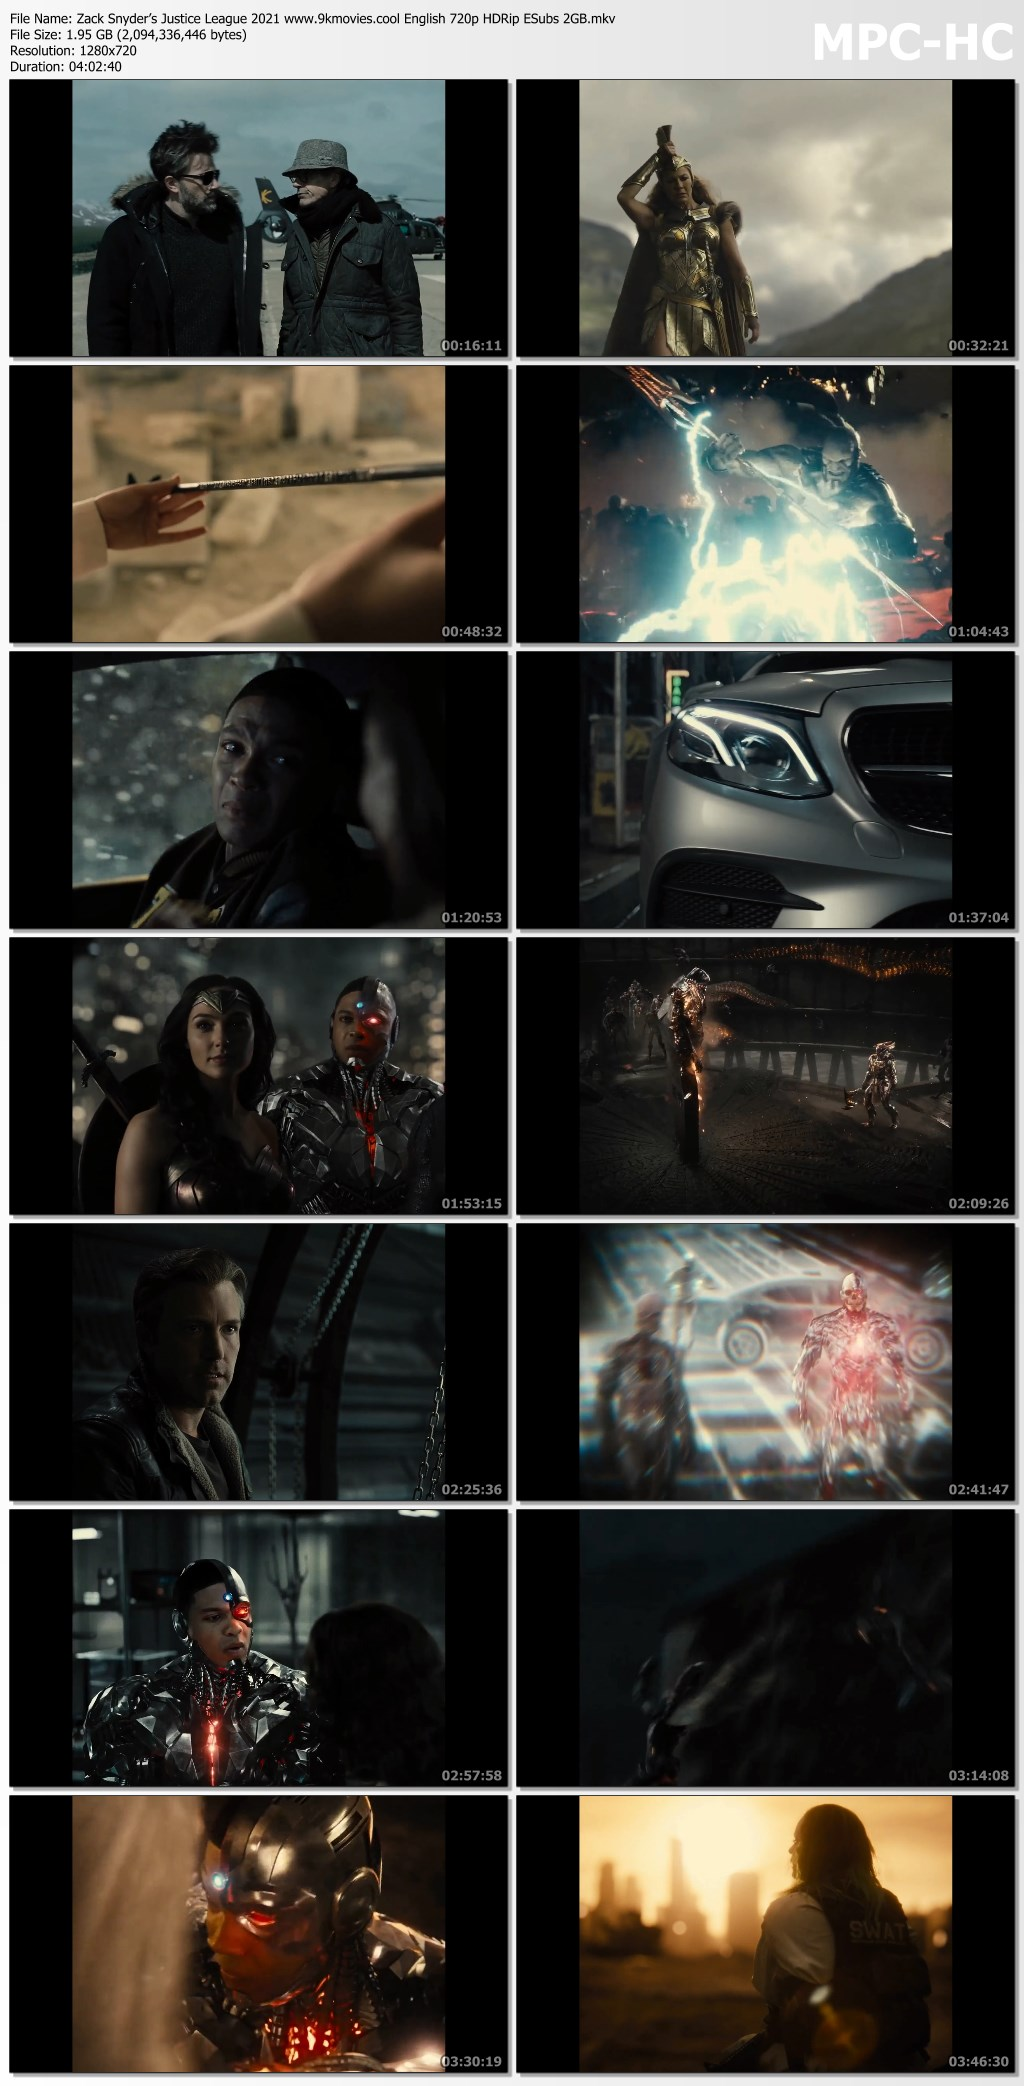 Zack Snyder's Justice League 2021 screenshot HDMoviesFair